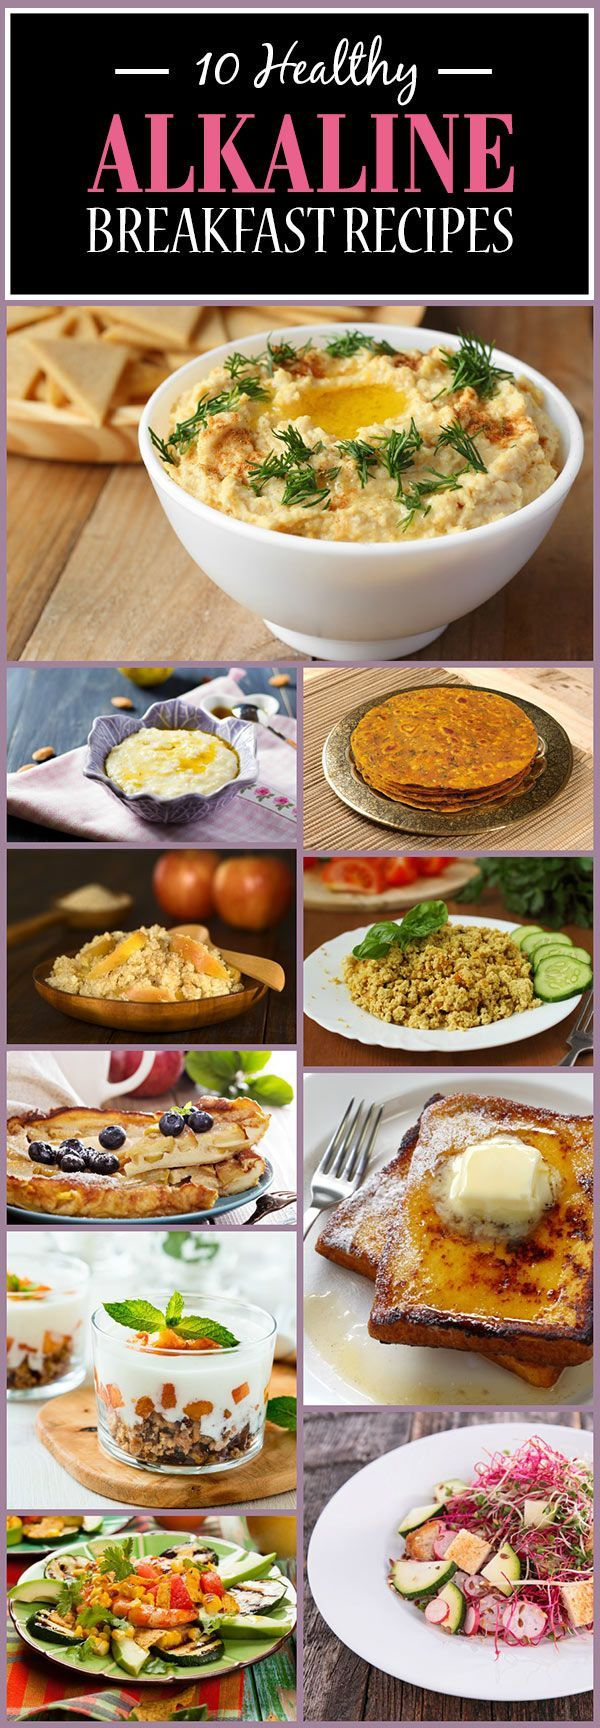 Looking for some delicious alkaline breakfast recipes? We have some of the best ones enlisted for you!